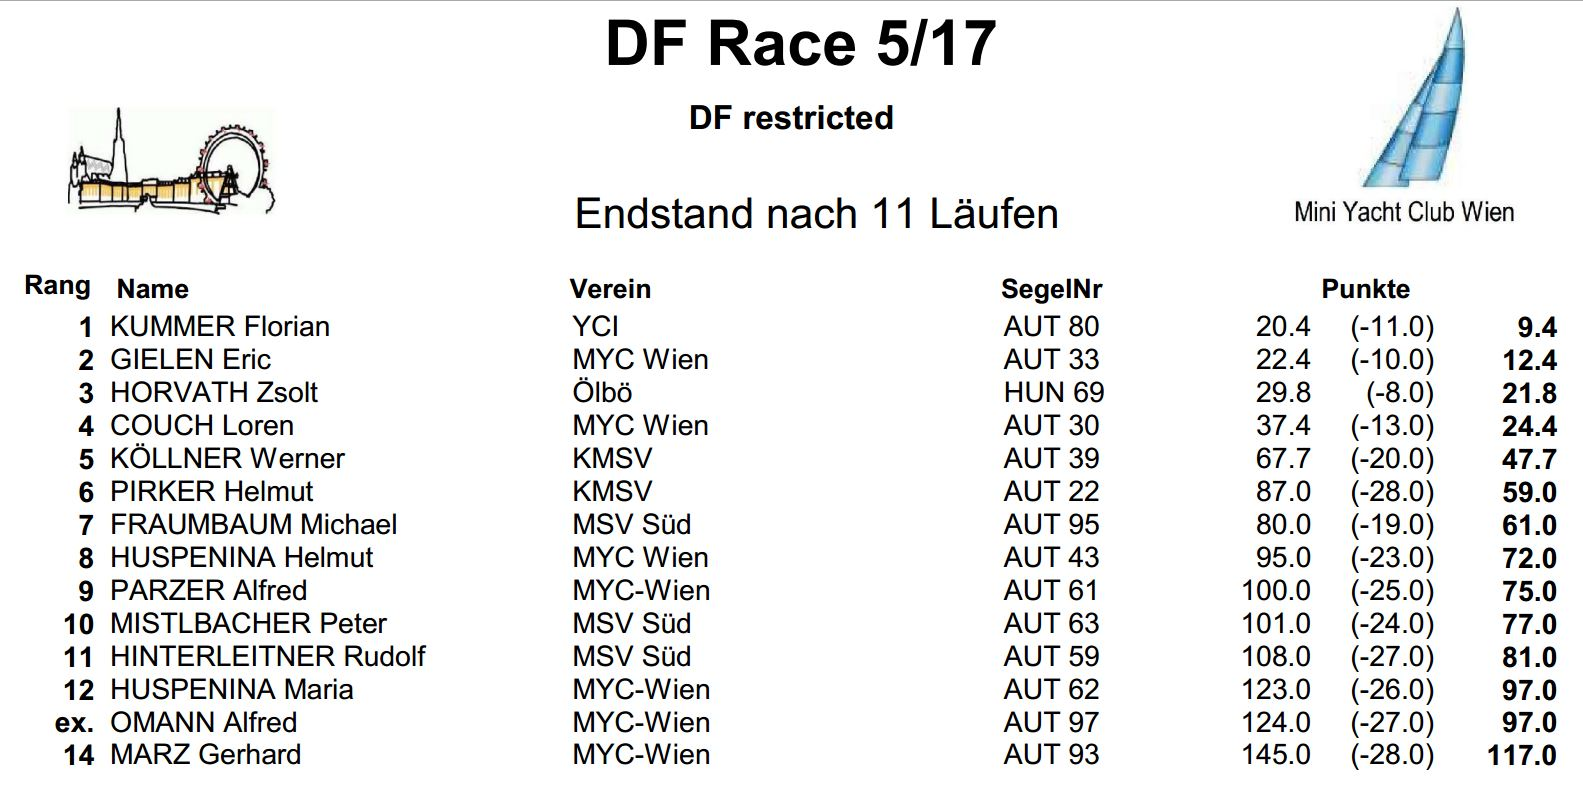 DF Race5 2017 Endstand